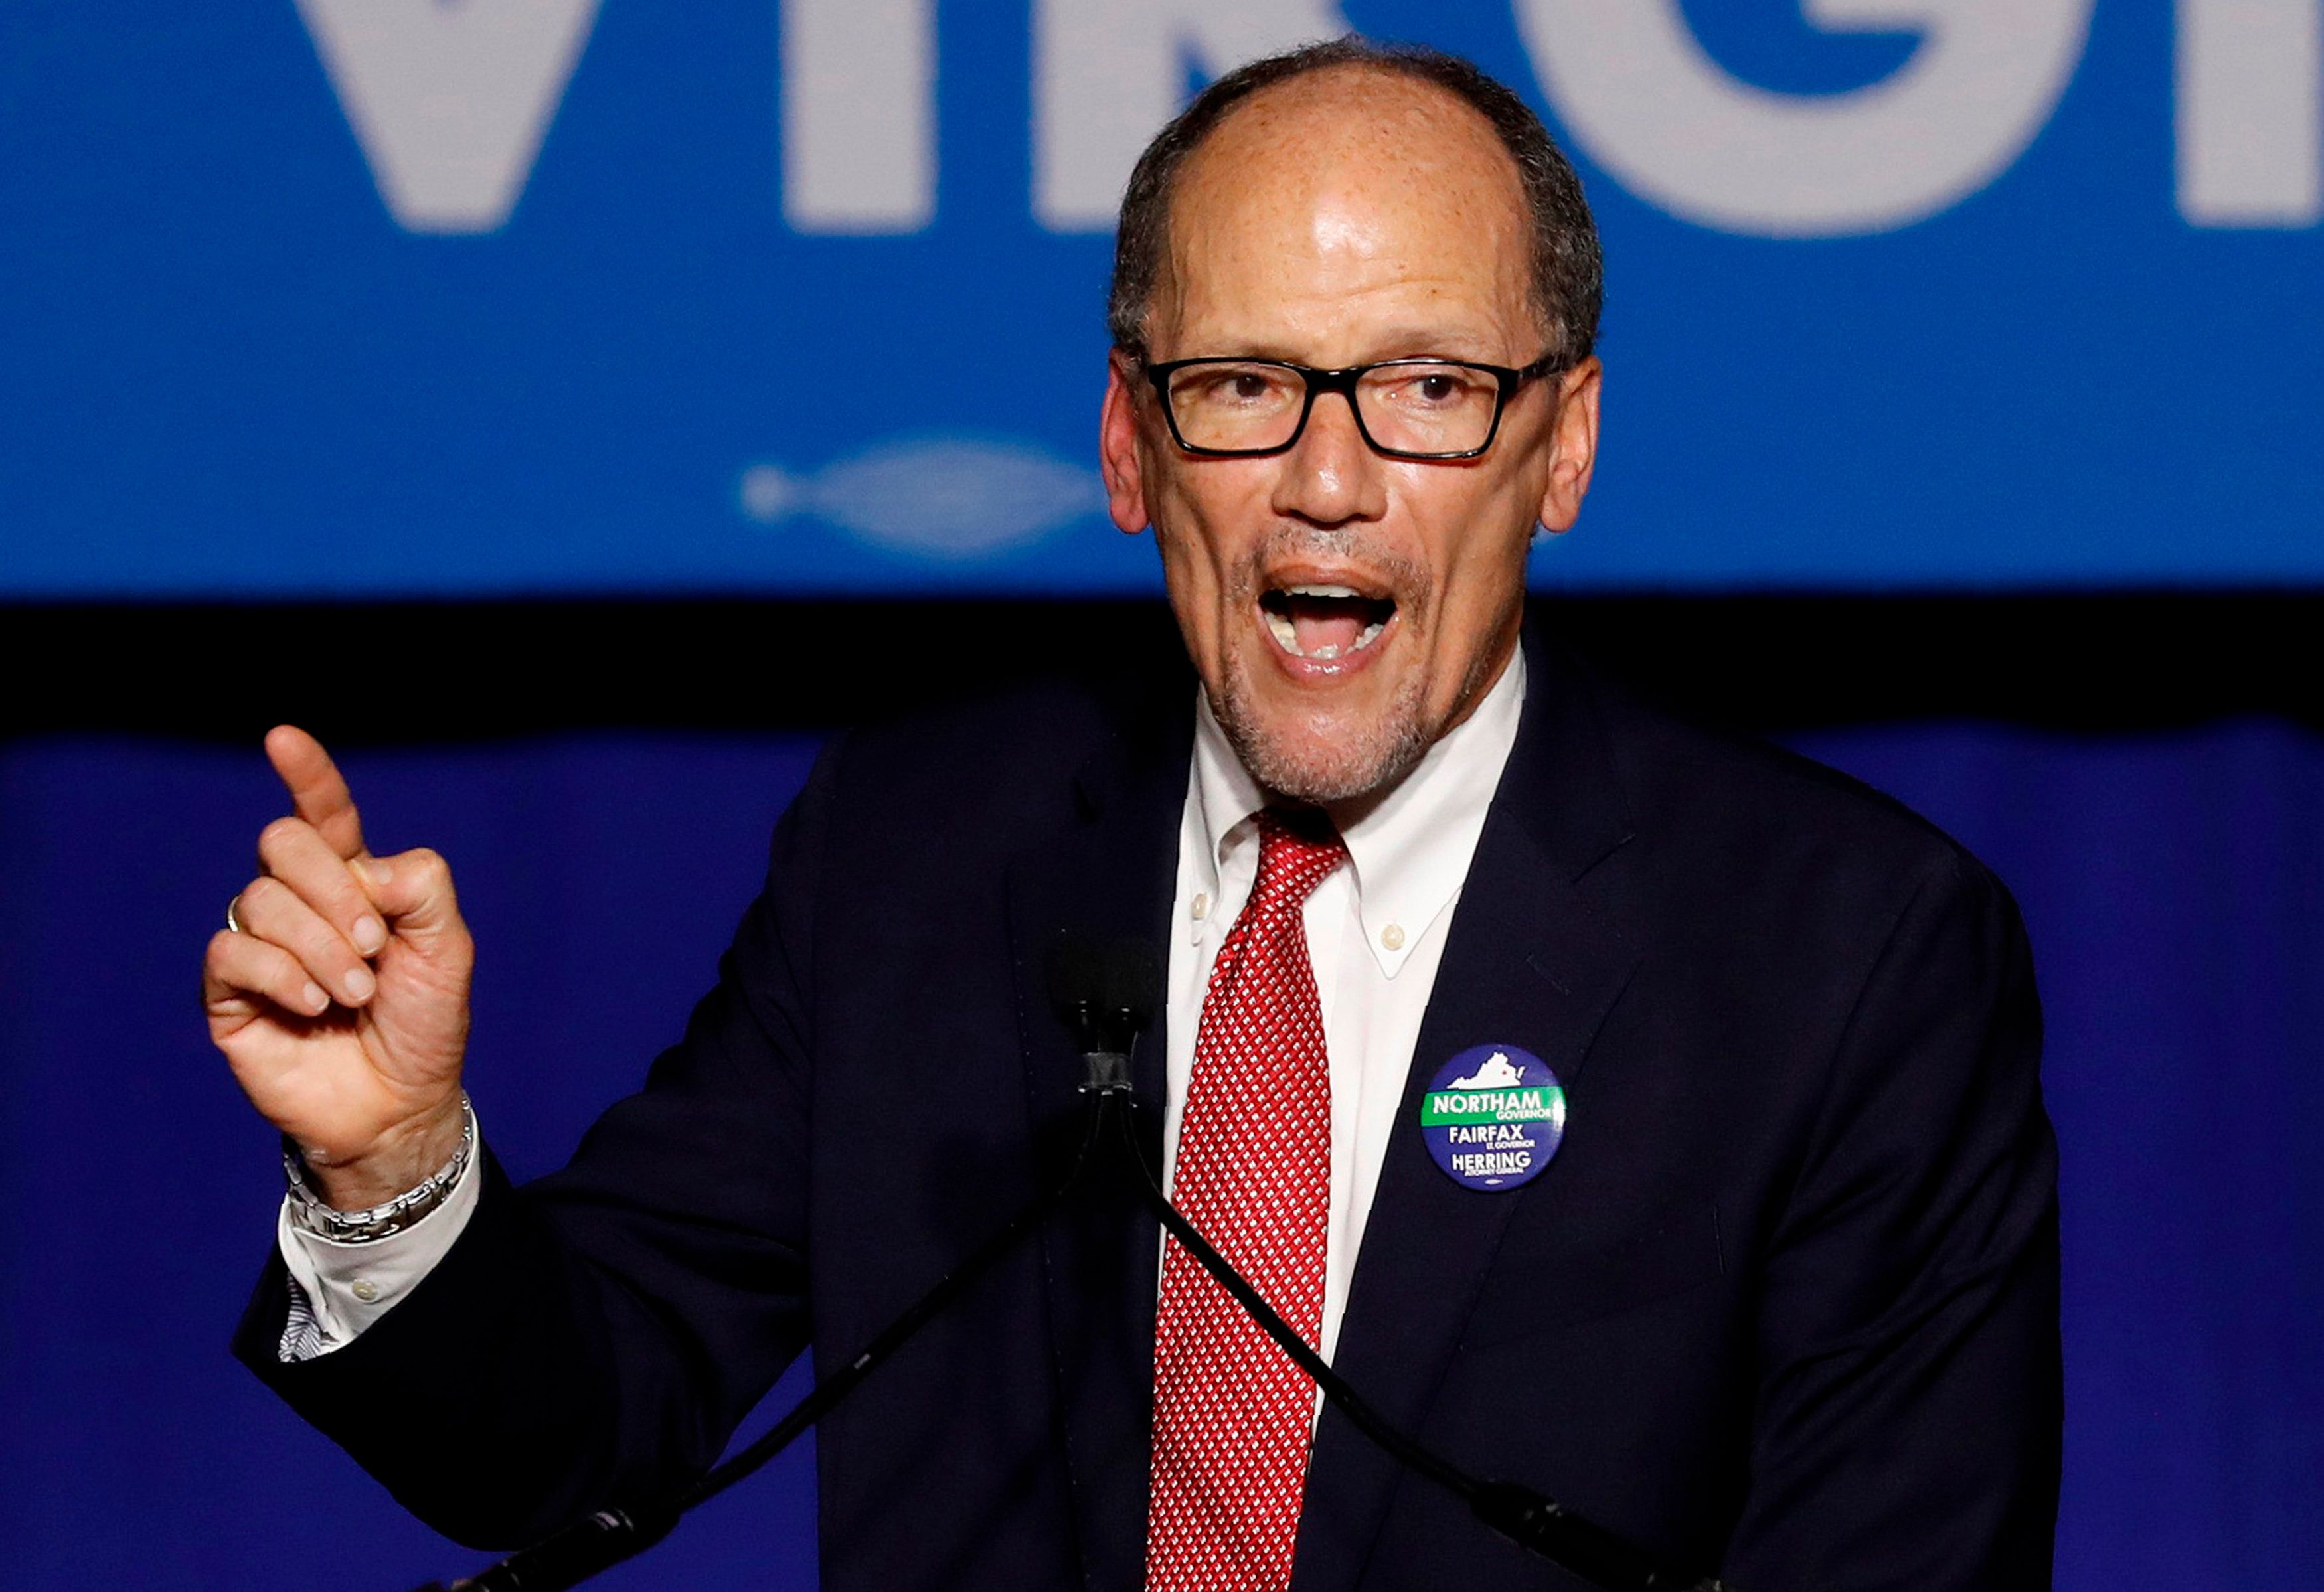 Democratic National Committee Chairman Tom Perez speaks at Ralph Northam's election night rally on the campus of George Mason University in Fairfax, Virginia, November 7, 2017. REUTERS/Aaron P. Bernstein